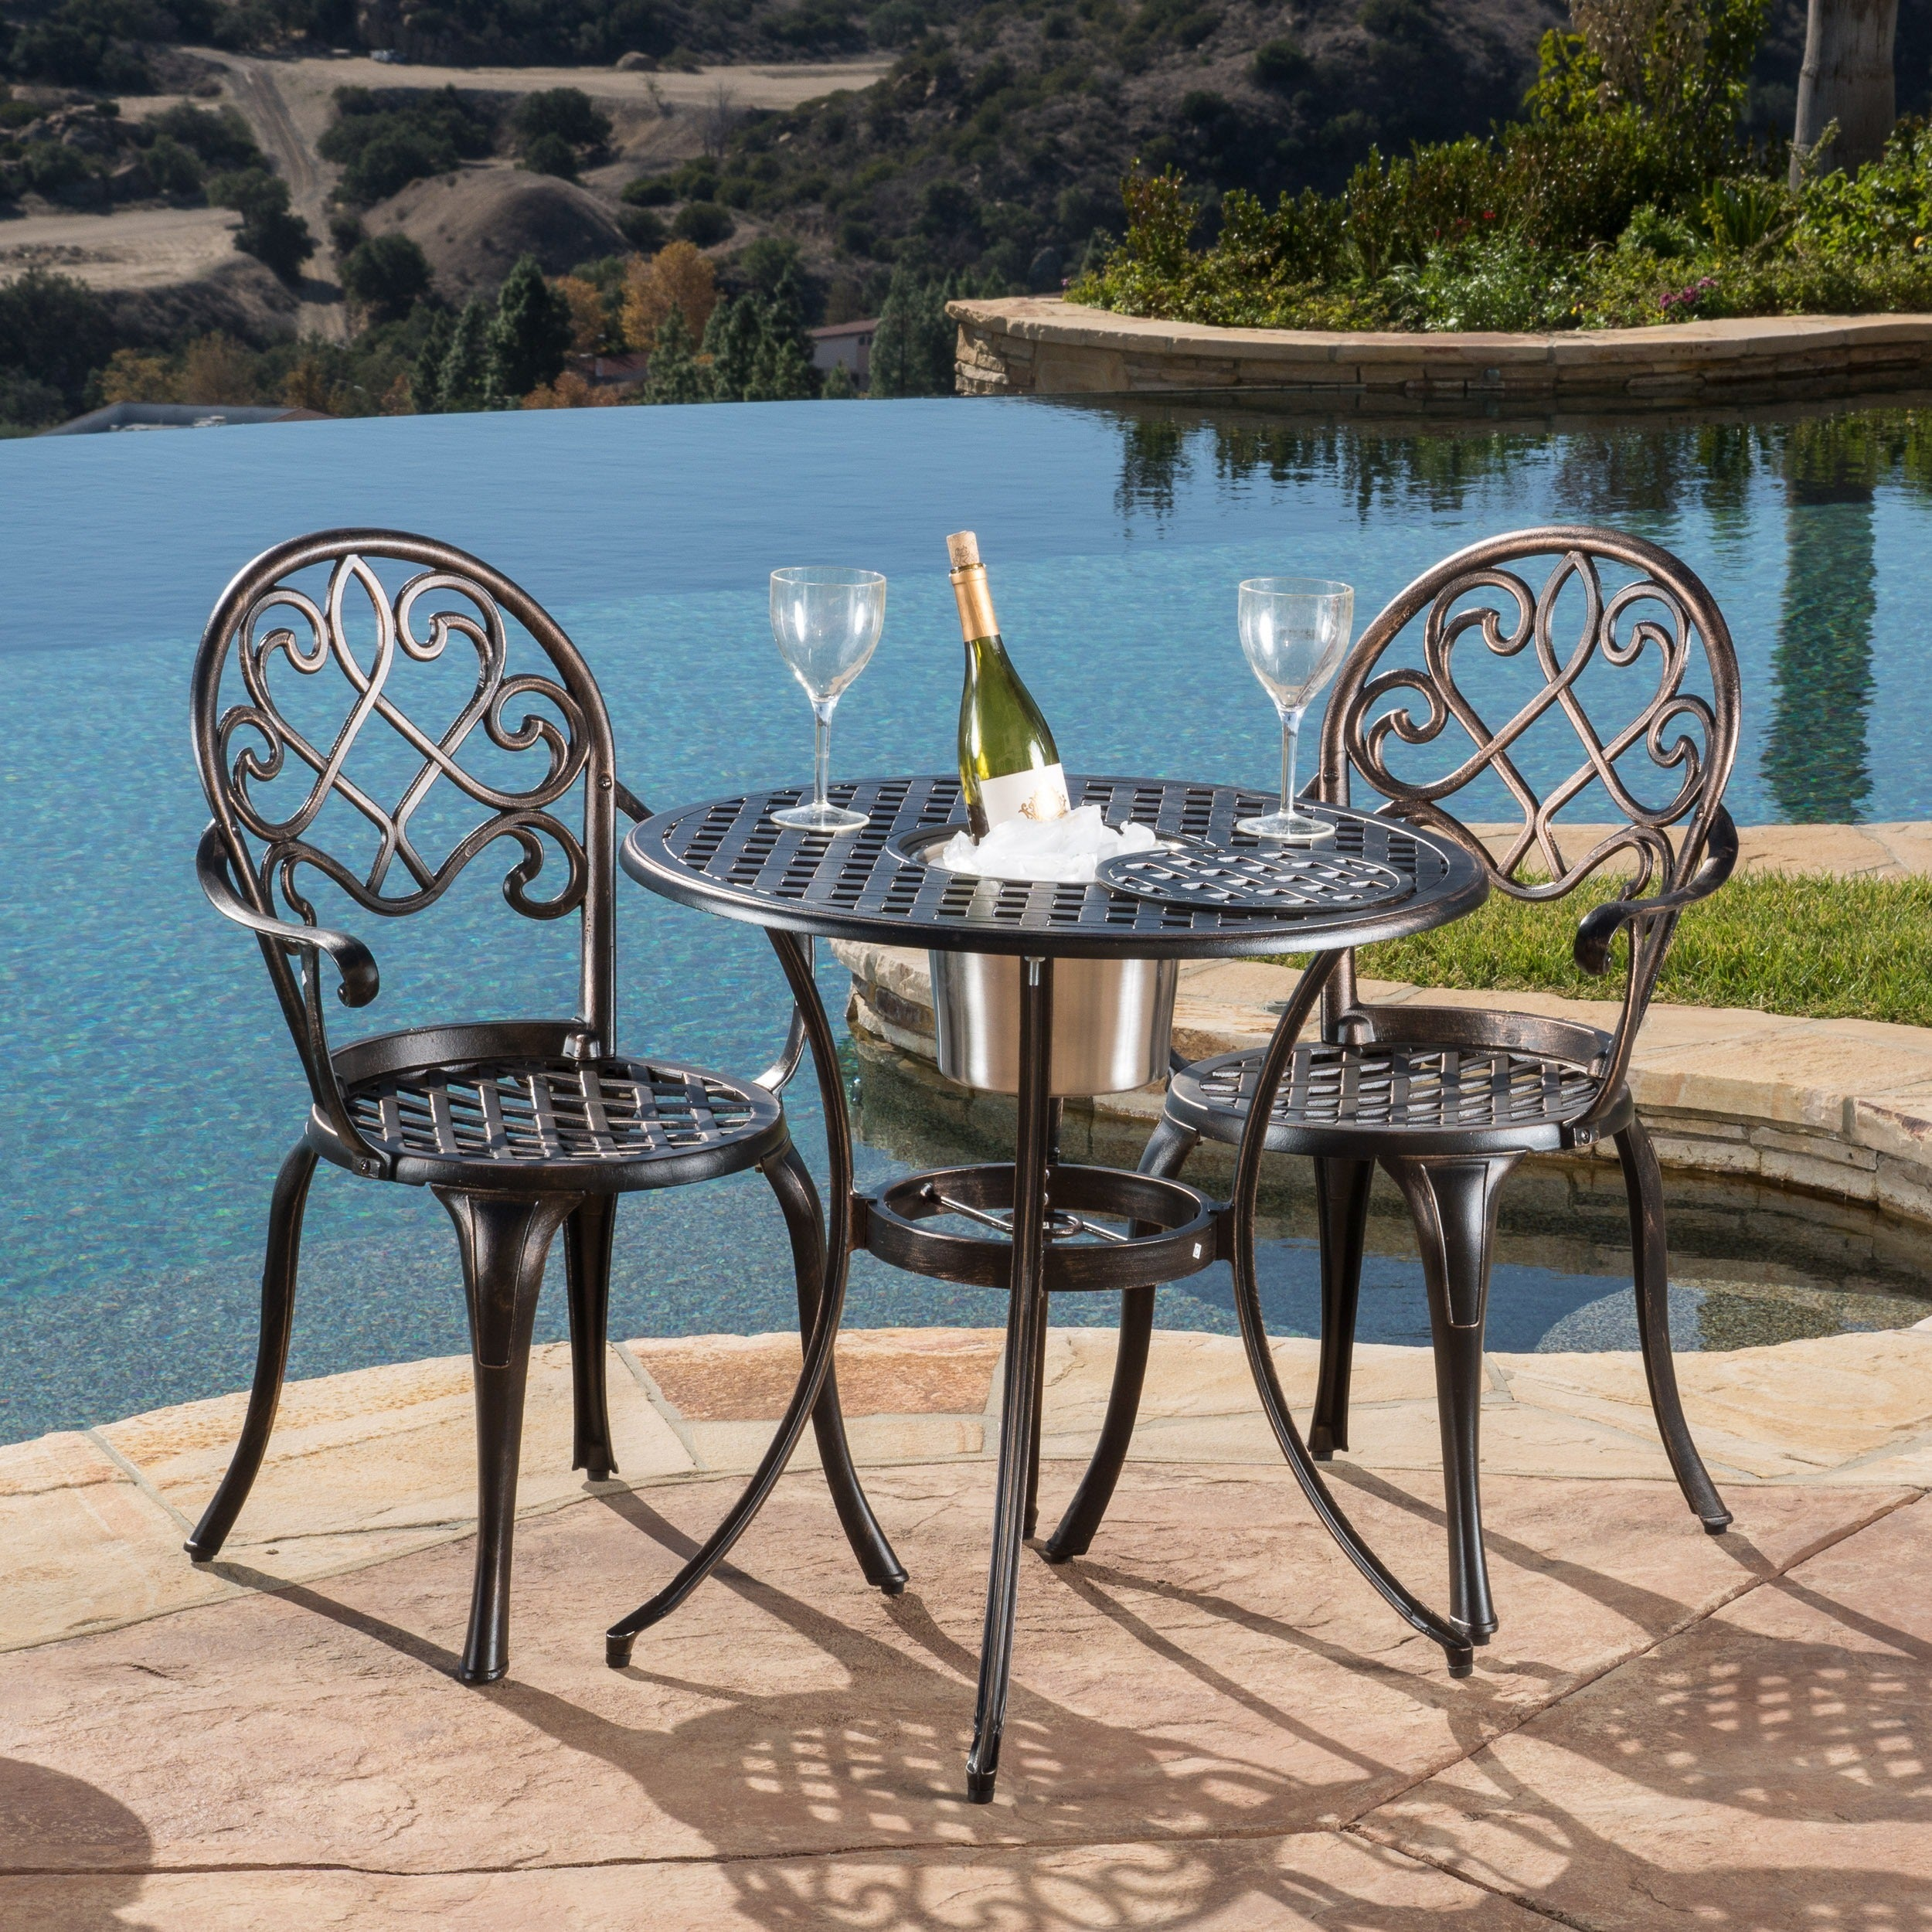 Angeles Cast Aluminum Outdoor Bistro Furniture Set With Ice Bucket By Christopher Knight Home On Free Shipping Today 6641686